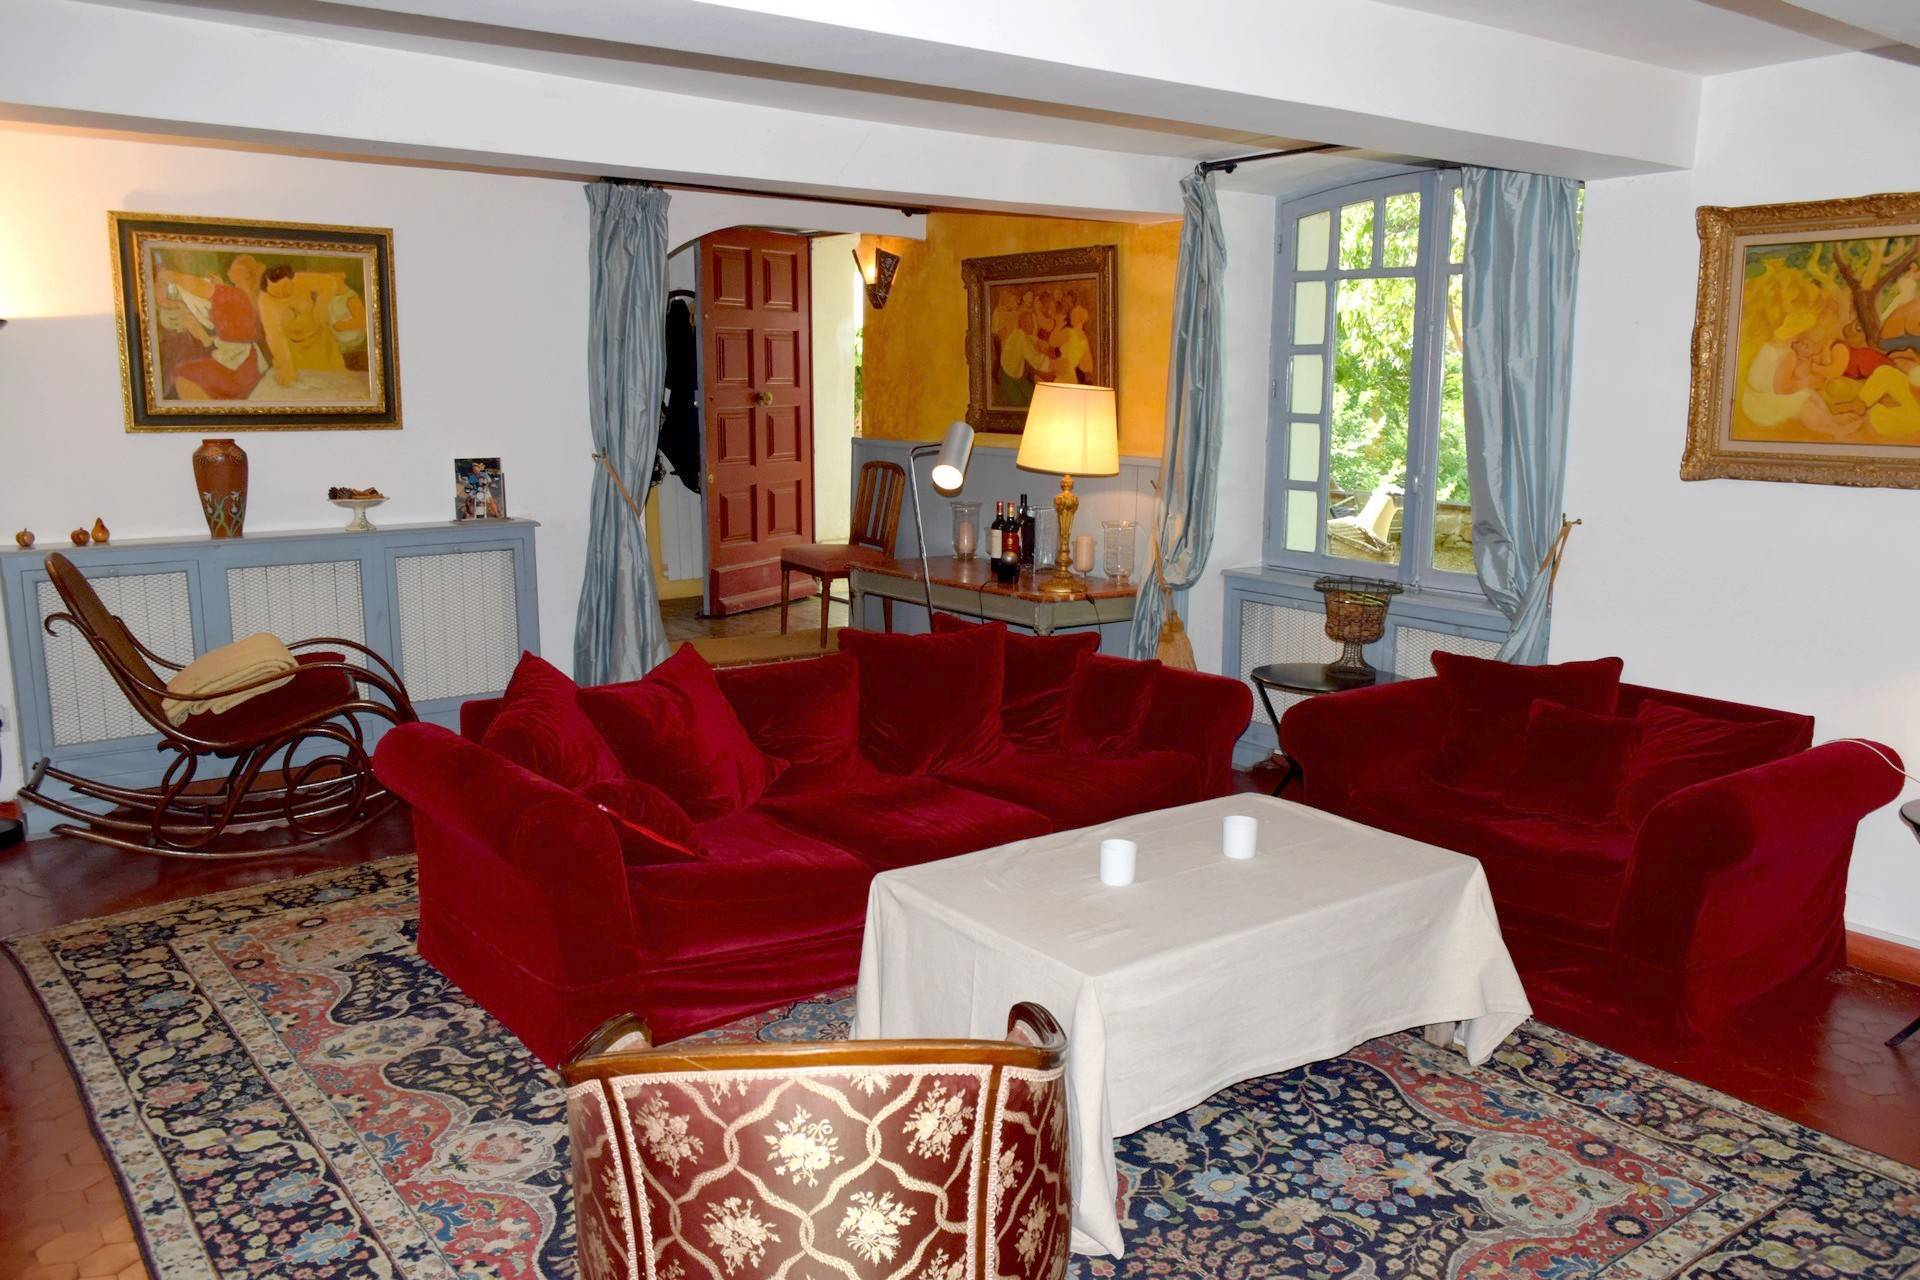 living room view  renovated country house on 8 ha, swimming pool, caretaker's house, aups var, provence